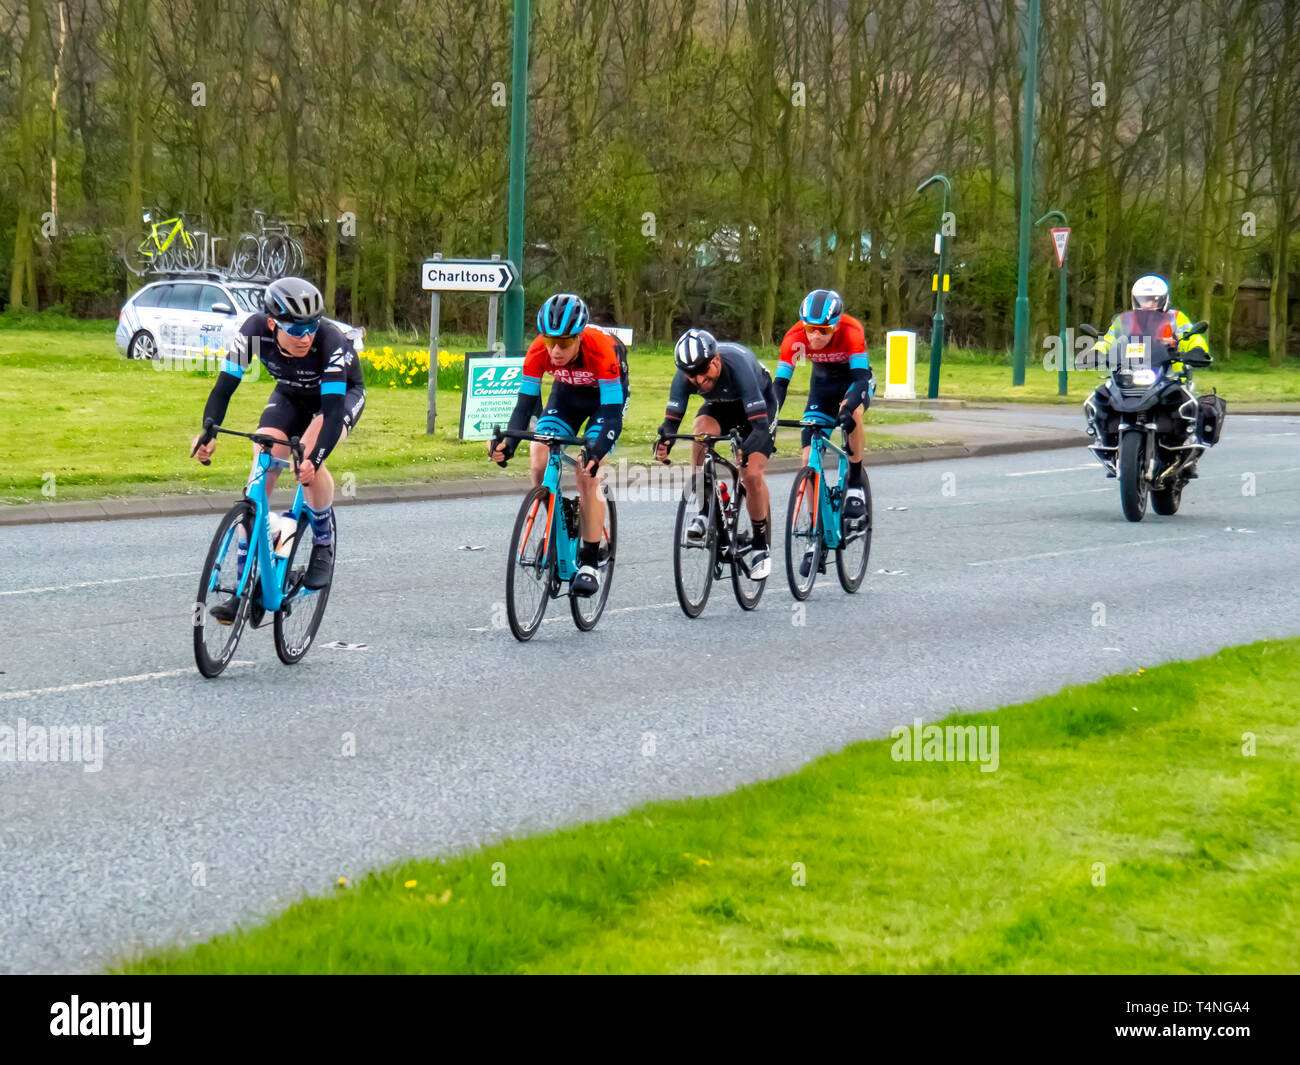 Riders in the Cleveland Klondike Grad Prix cycle race for professional riders on 14 April 2019 in Charletons near the finish at Guisborough Yorkshire Stock Photo